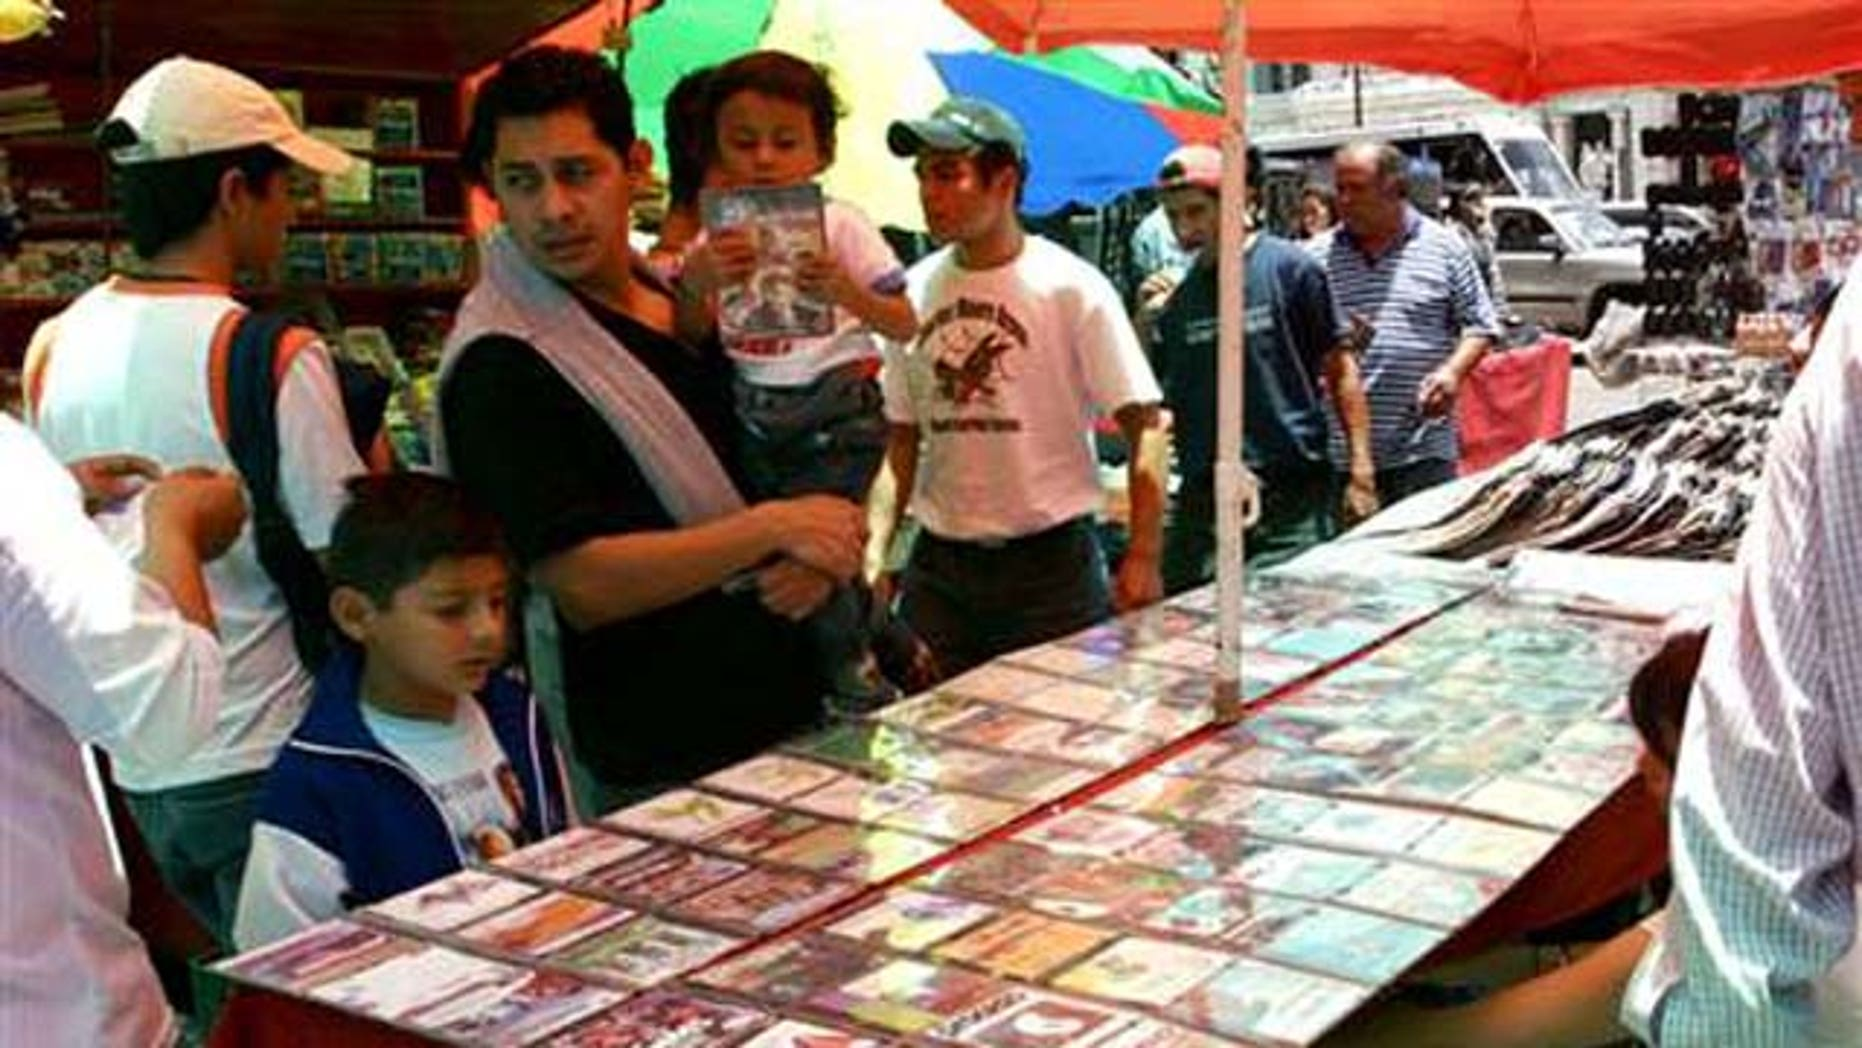 June 27, 2006: People shop for pirated CD's in downtown Mexico City.